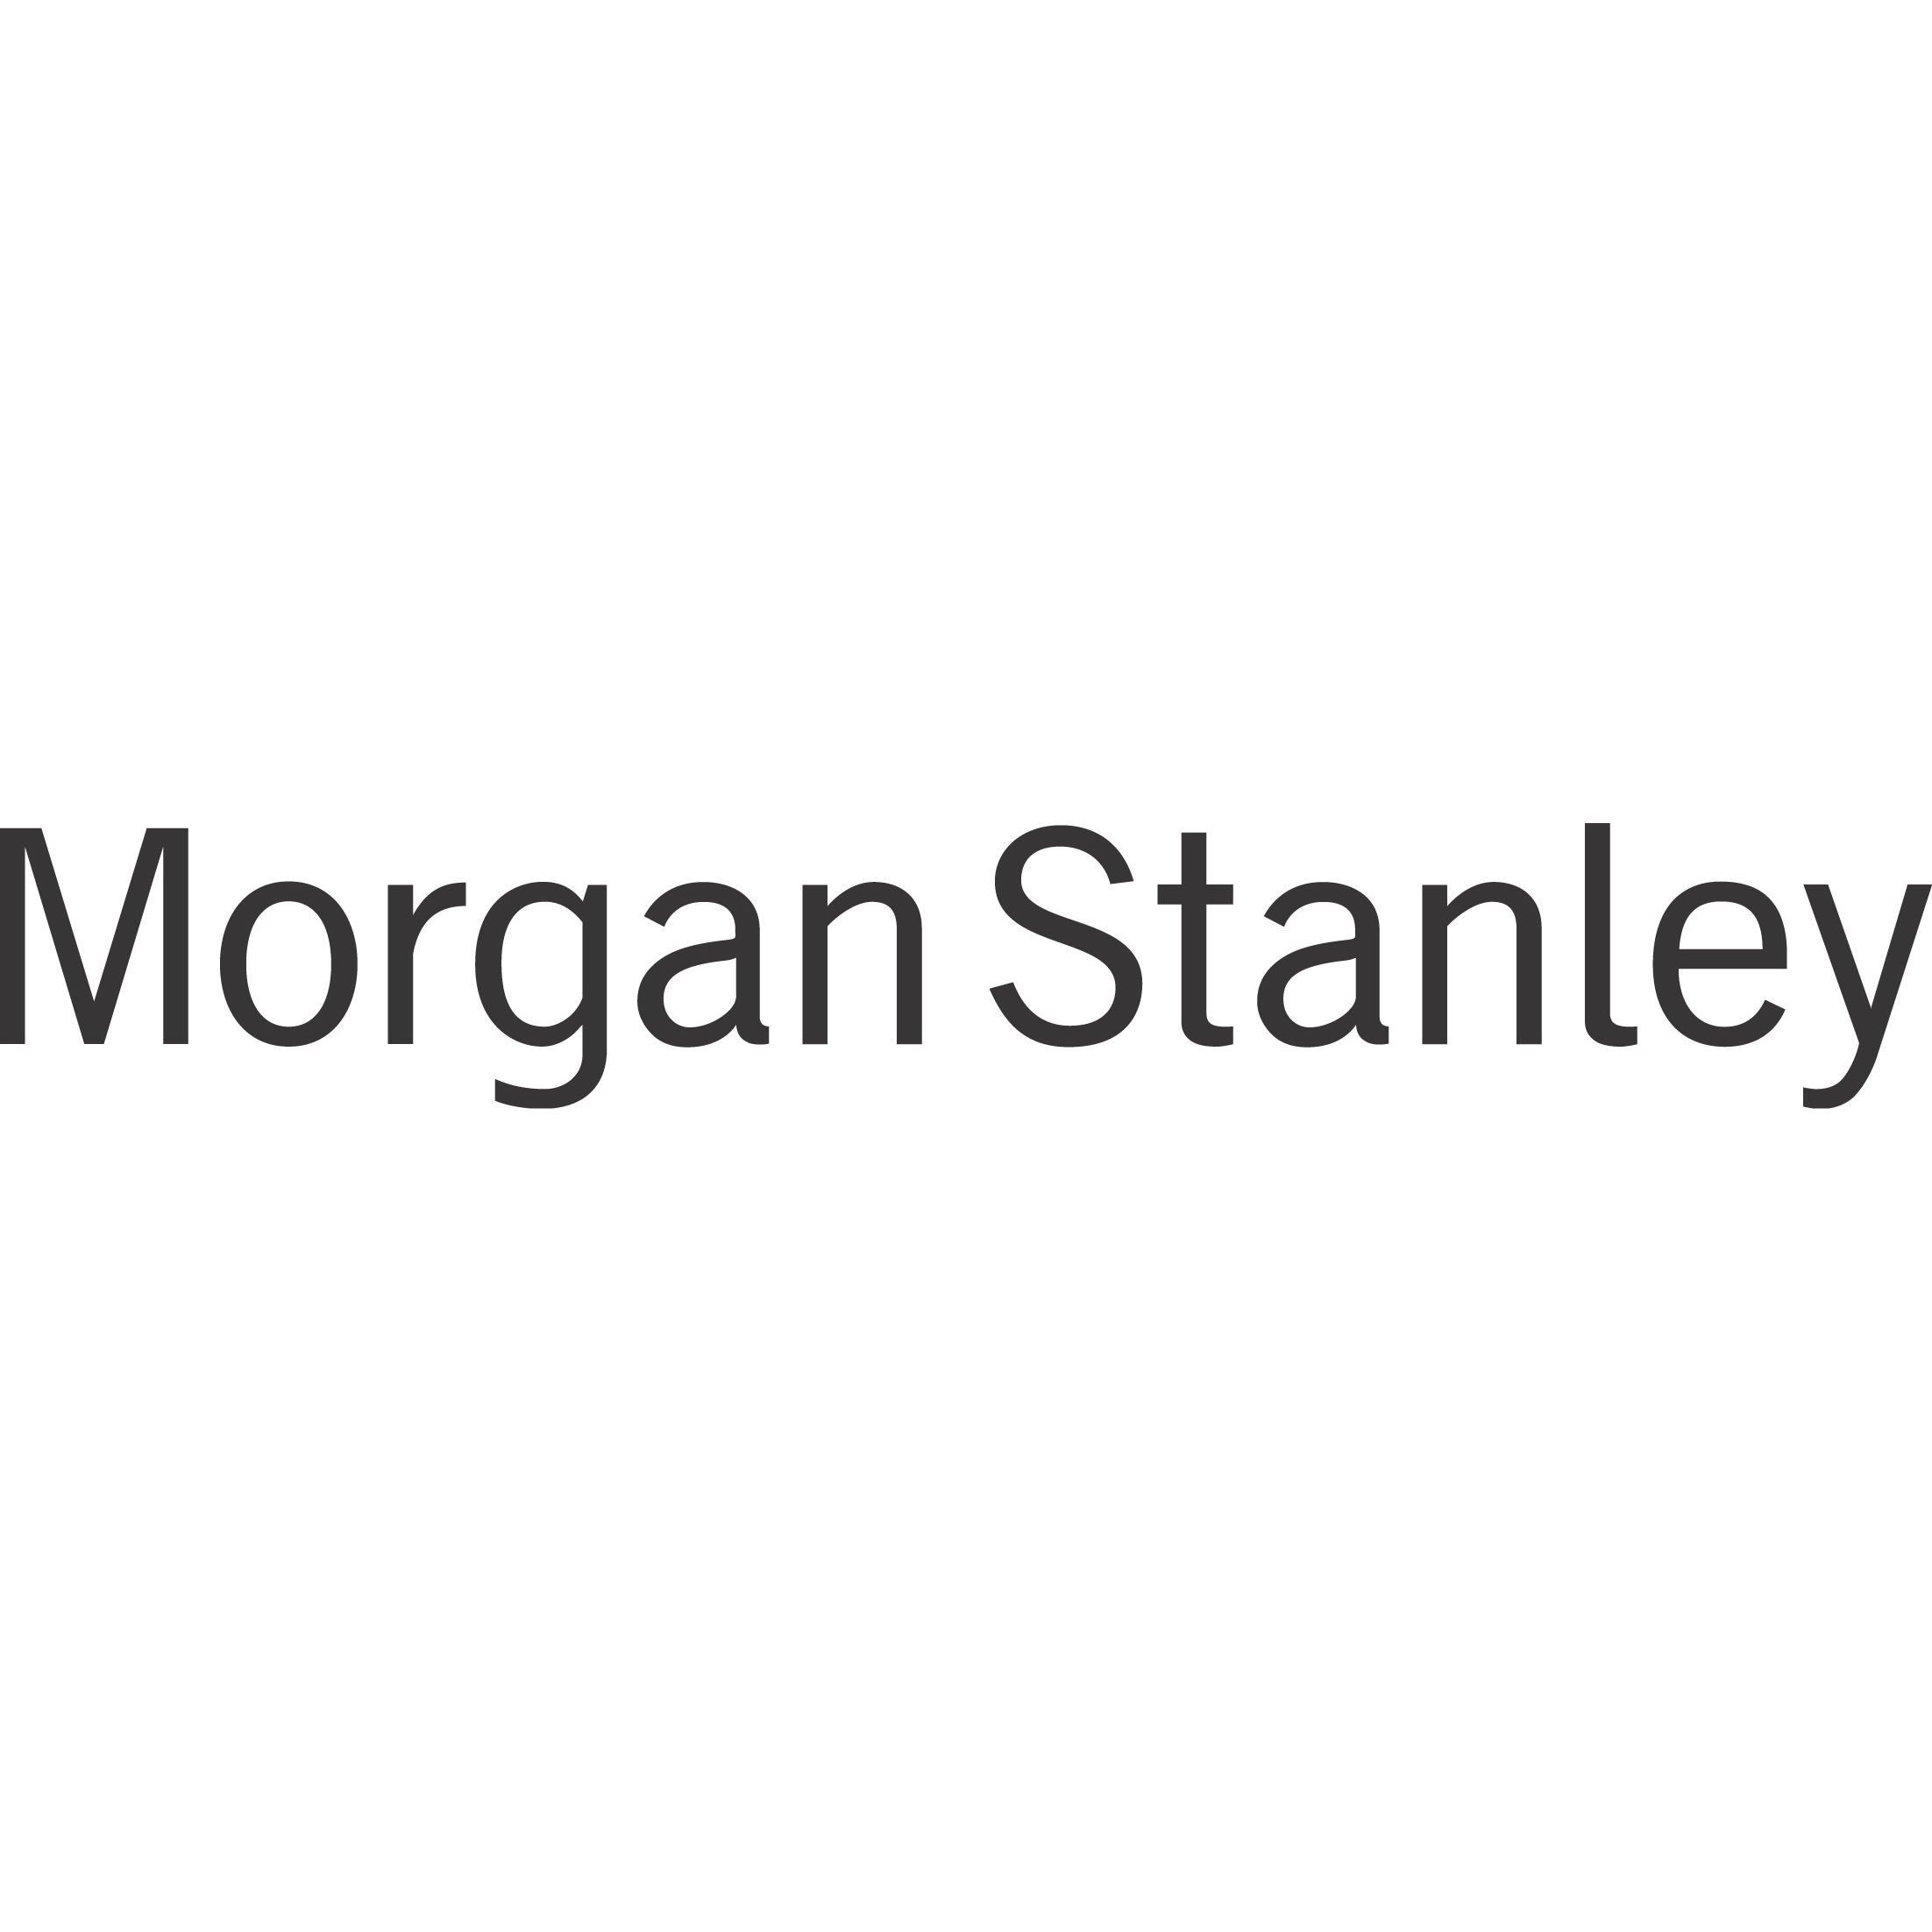 Tony Mampieri - Morgan Stanley - Columbus, OH 43215 - (614)229-4907 | ShowMeLocal.com